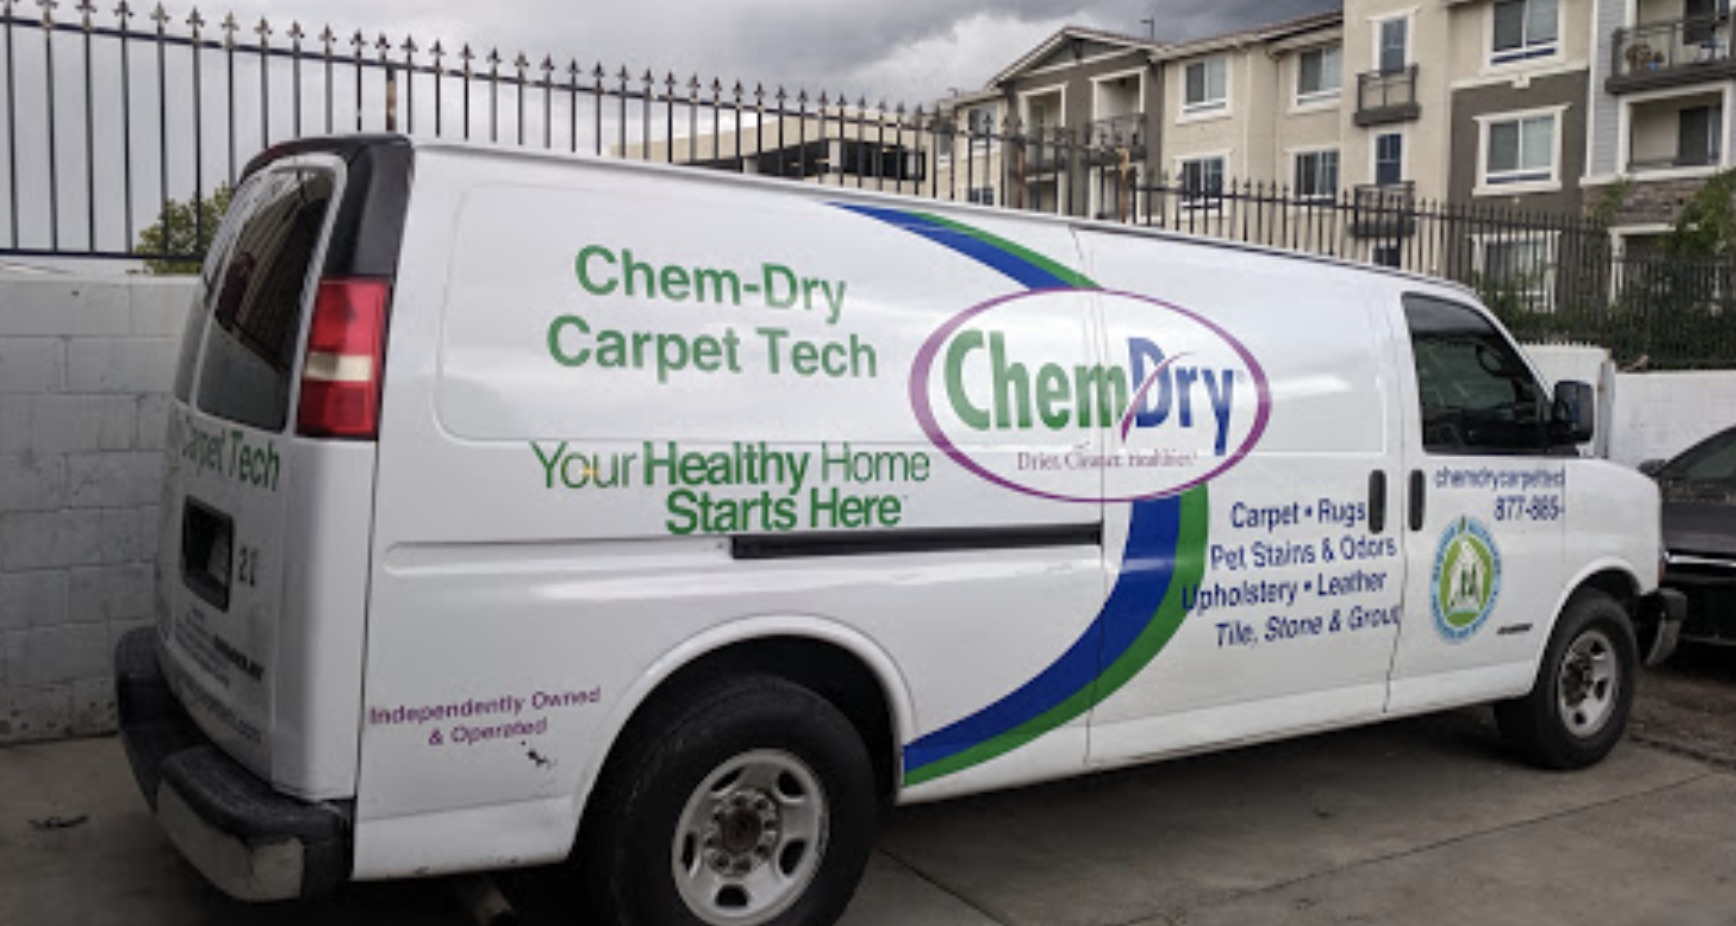 chem dry carpet tech van